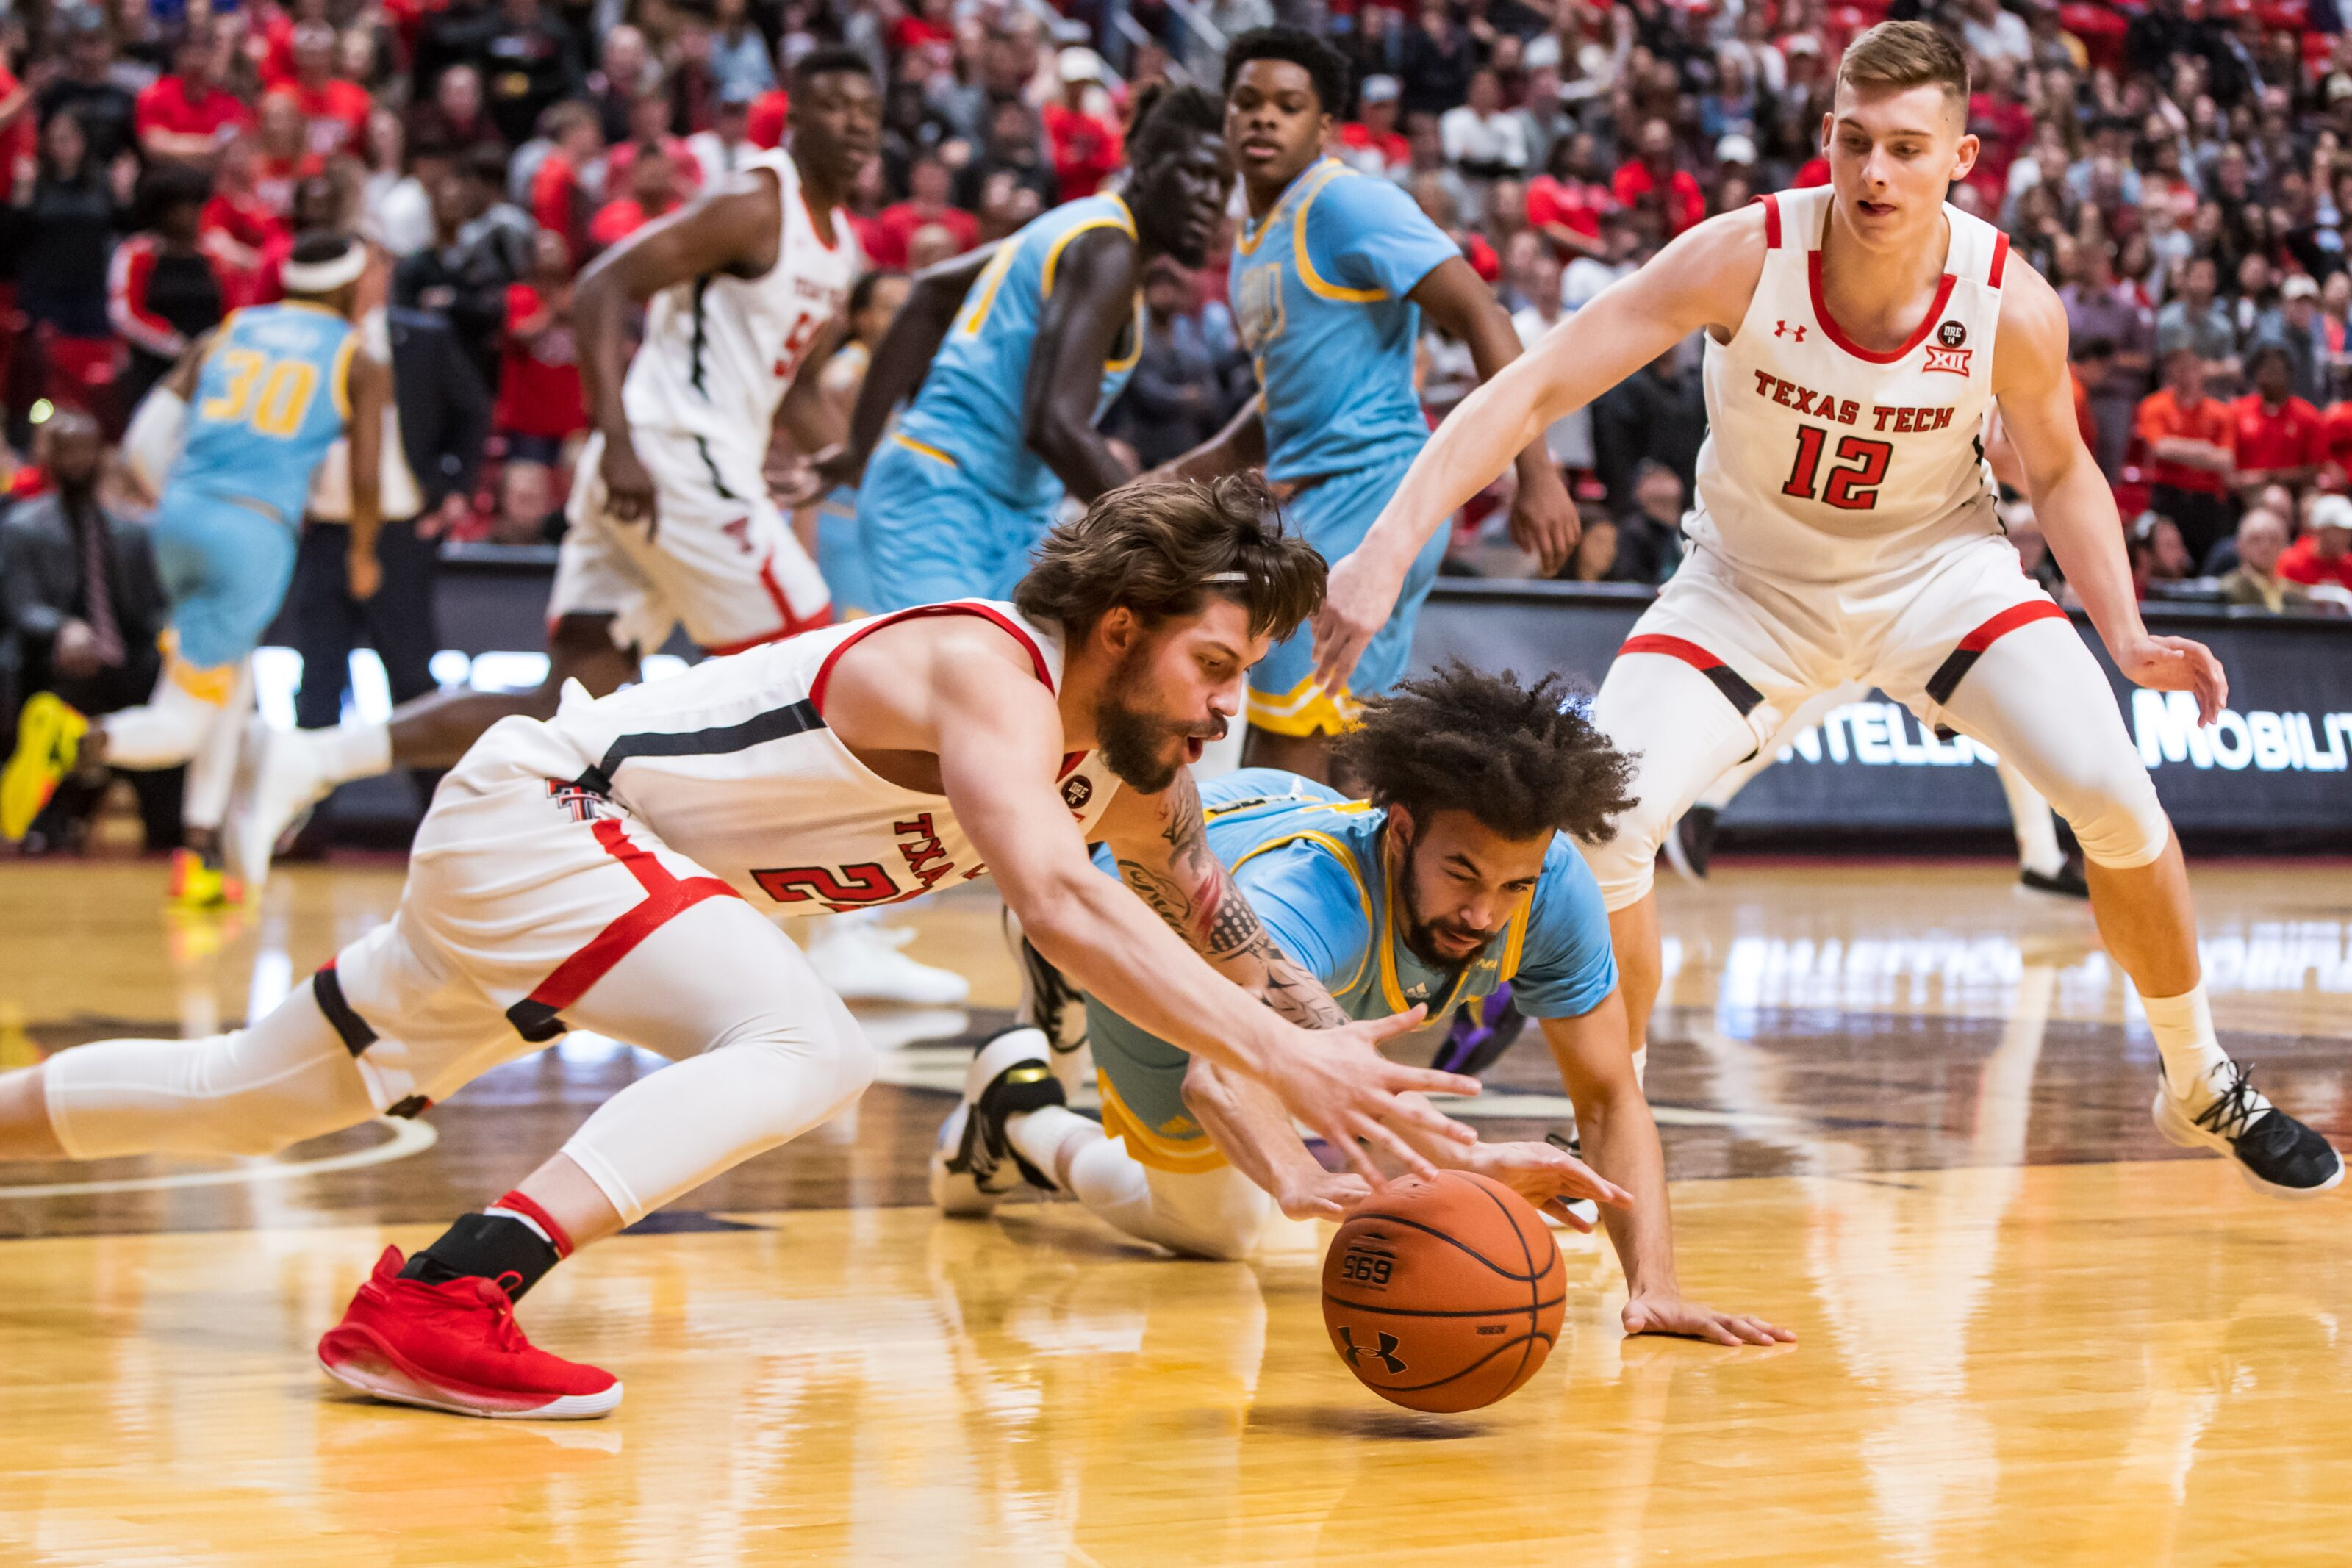 Texas Tech basketball: Now on scholarship, Avery Benson is Red Raider hoops